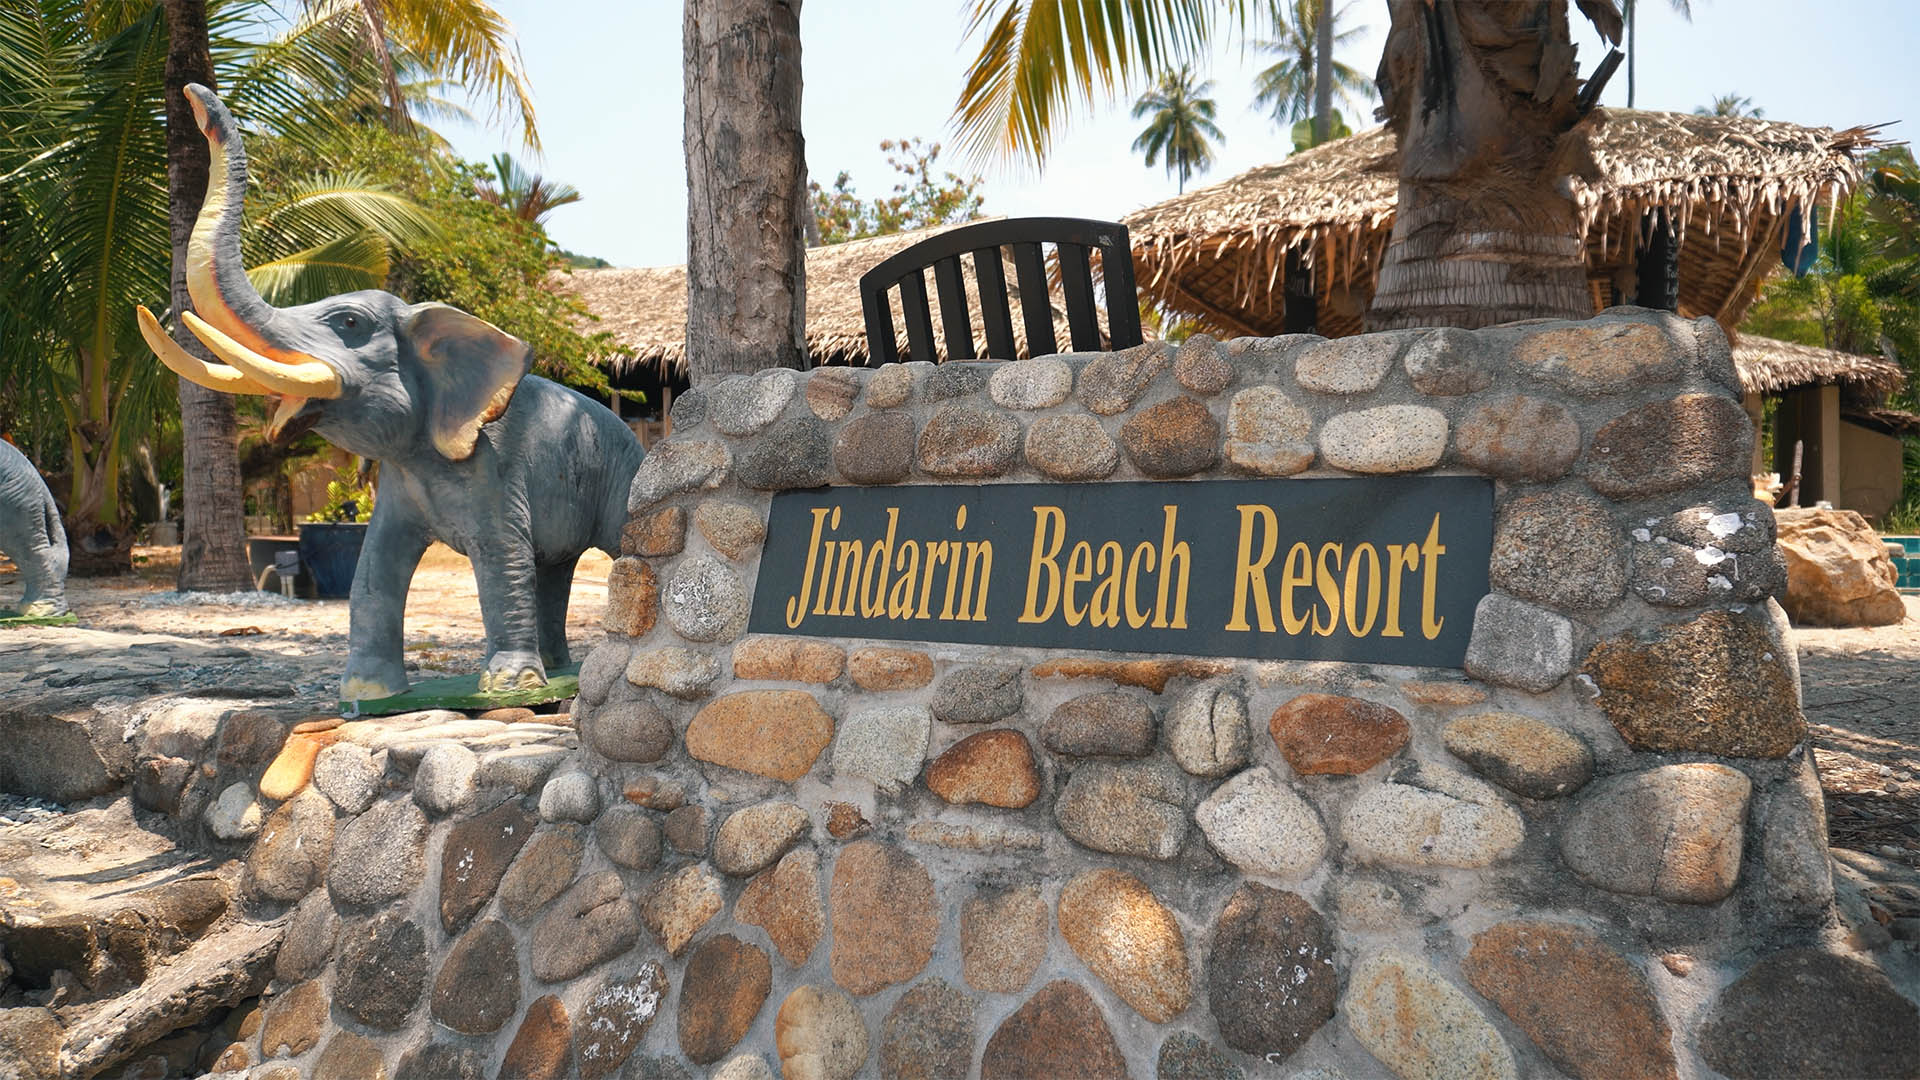 Jindarin Beach Resort